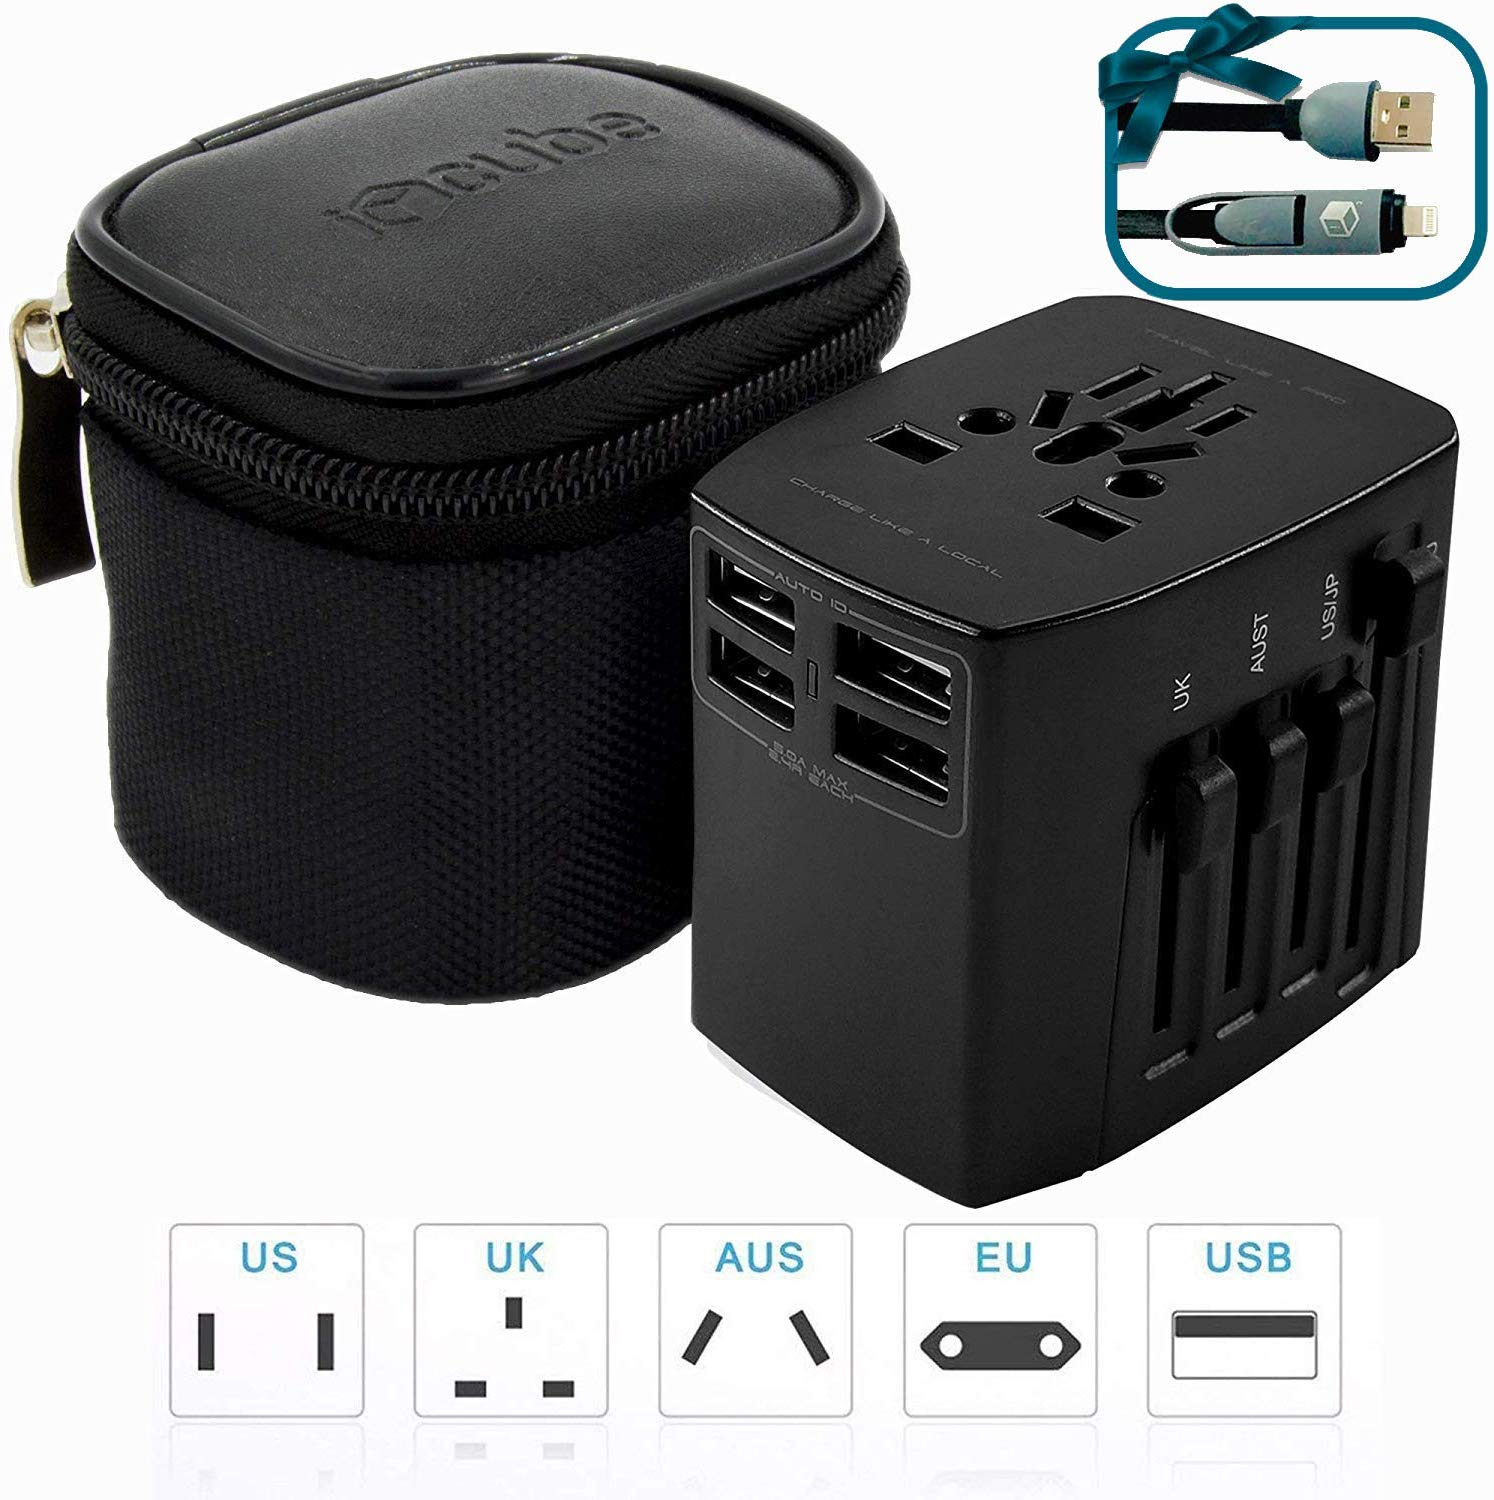 Worldwide Travel Adapter, 4 USB Ports Universal Surge Protection World's Safest International Power Adapter Plug